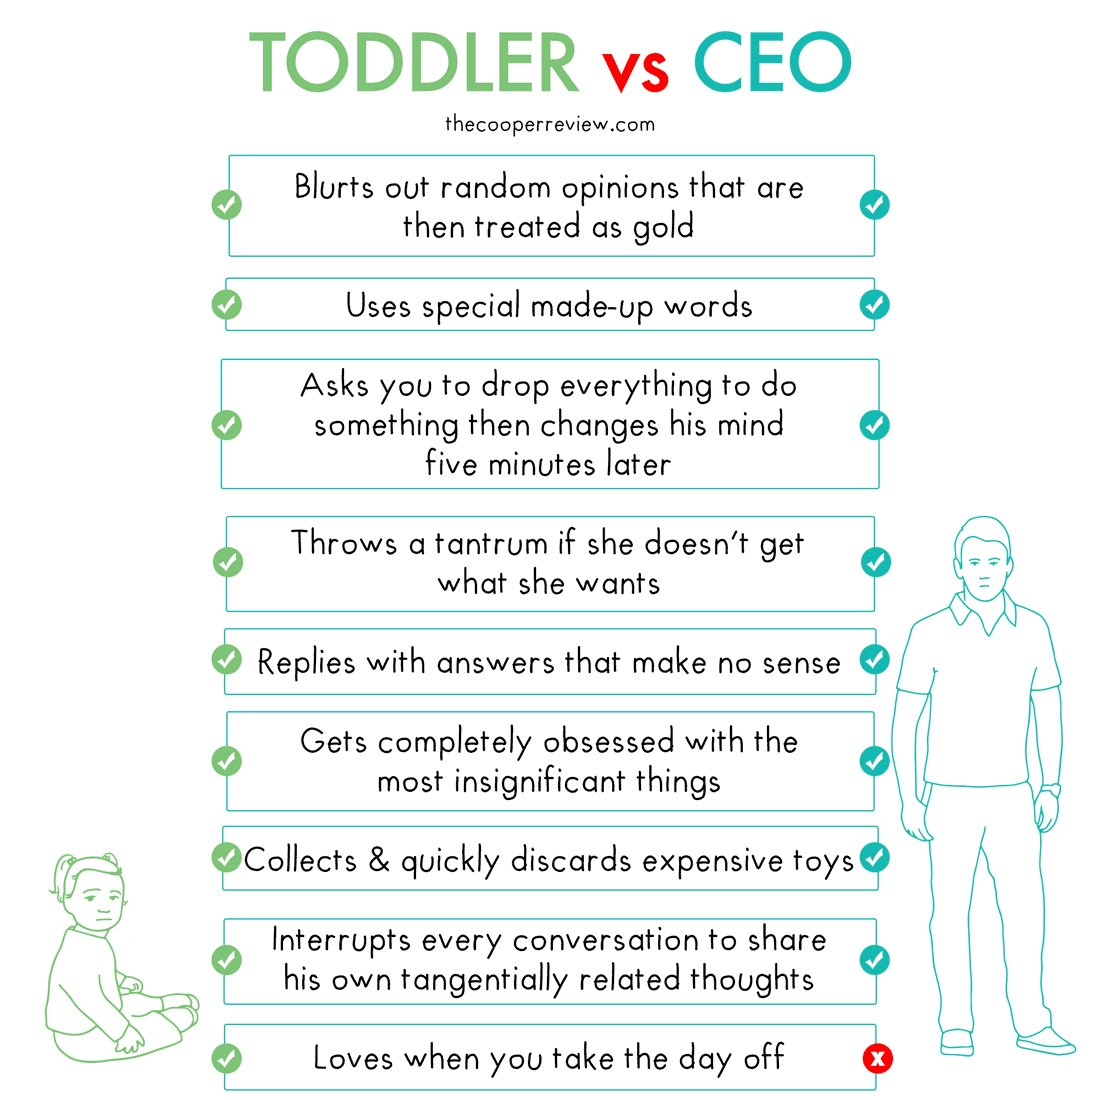 Toddler vs. CEO https://t.co/qT88Jz4OqN https://t.co/z6y2aFiITY